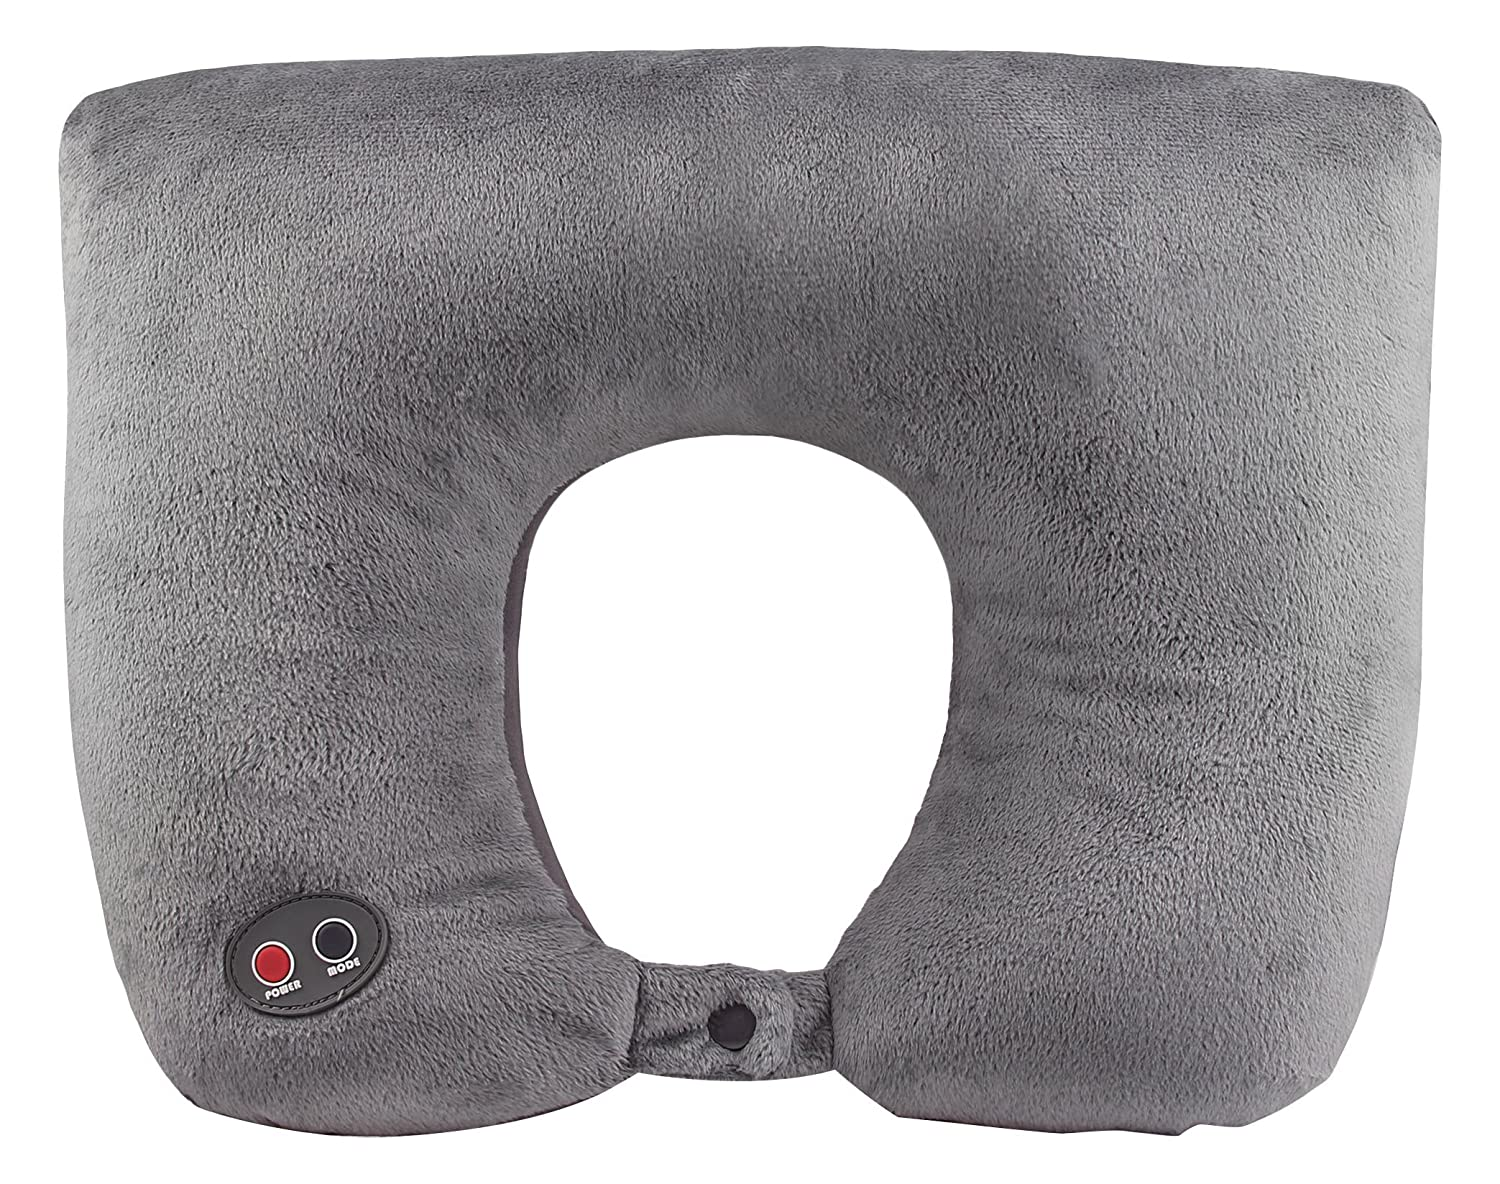 Neck Pillow Styles Top 10 Best Sellers For Travel